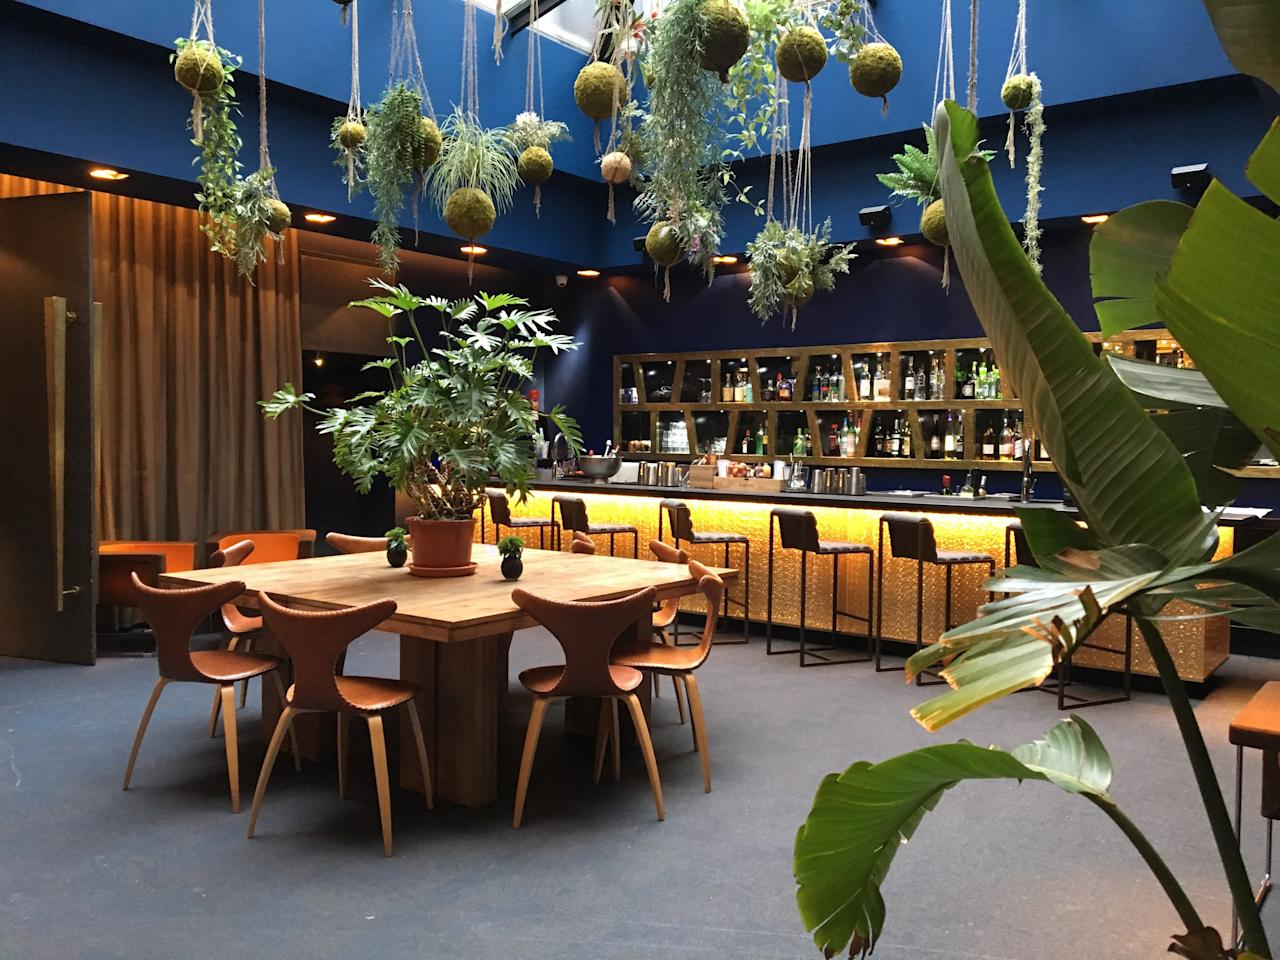 15 of the most beautiful hotel lobbies in the world for Tropical hotel decor